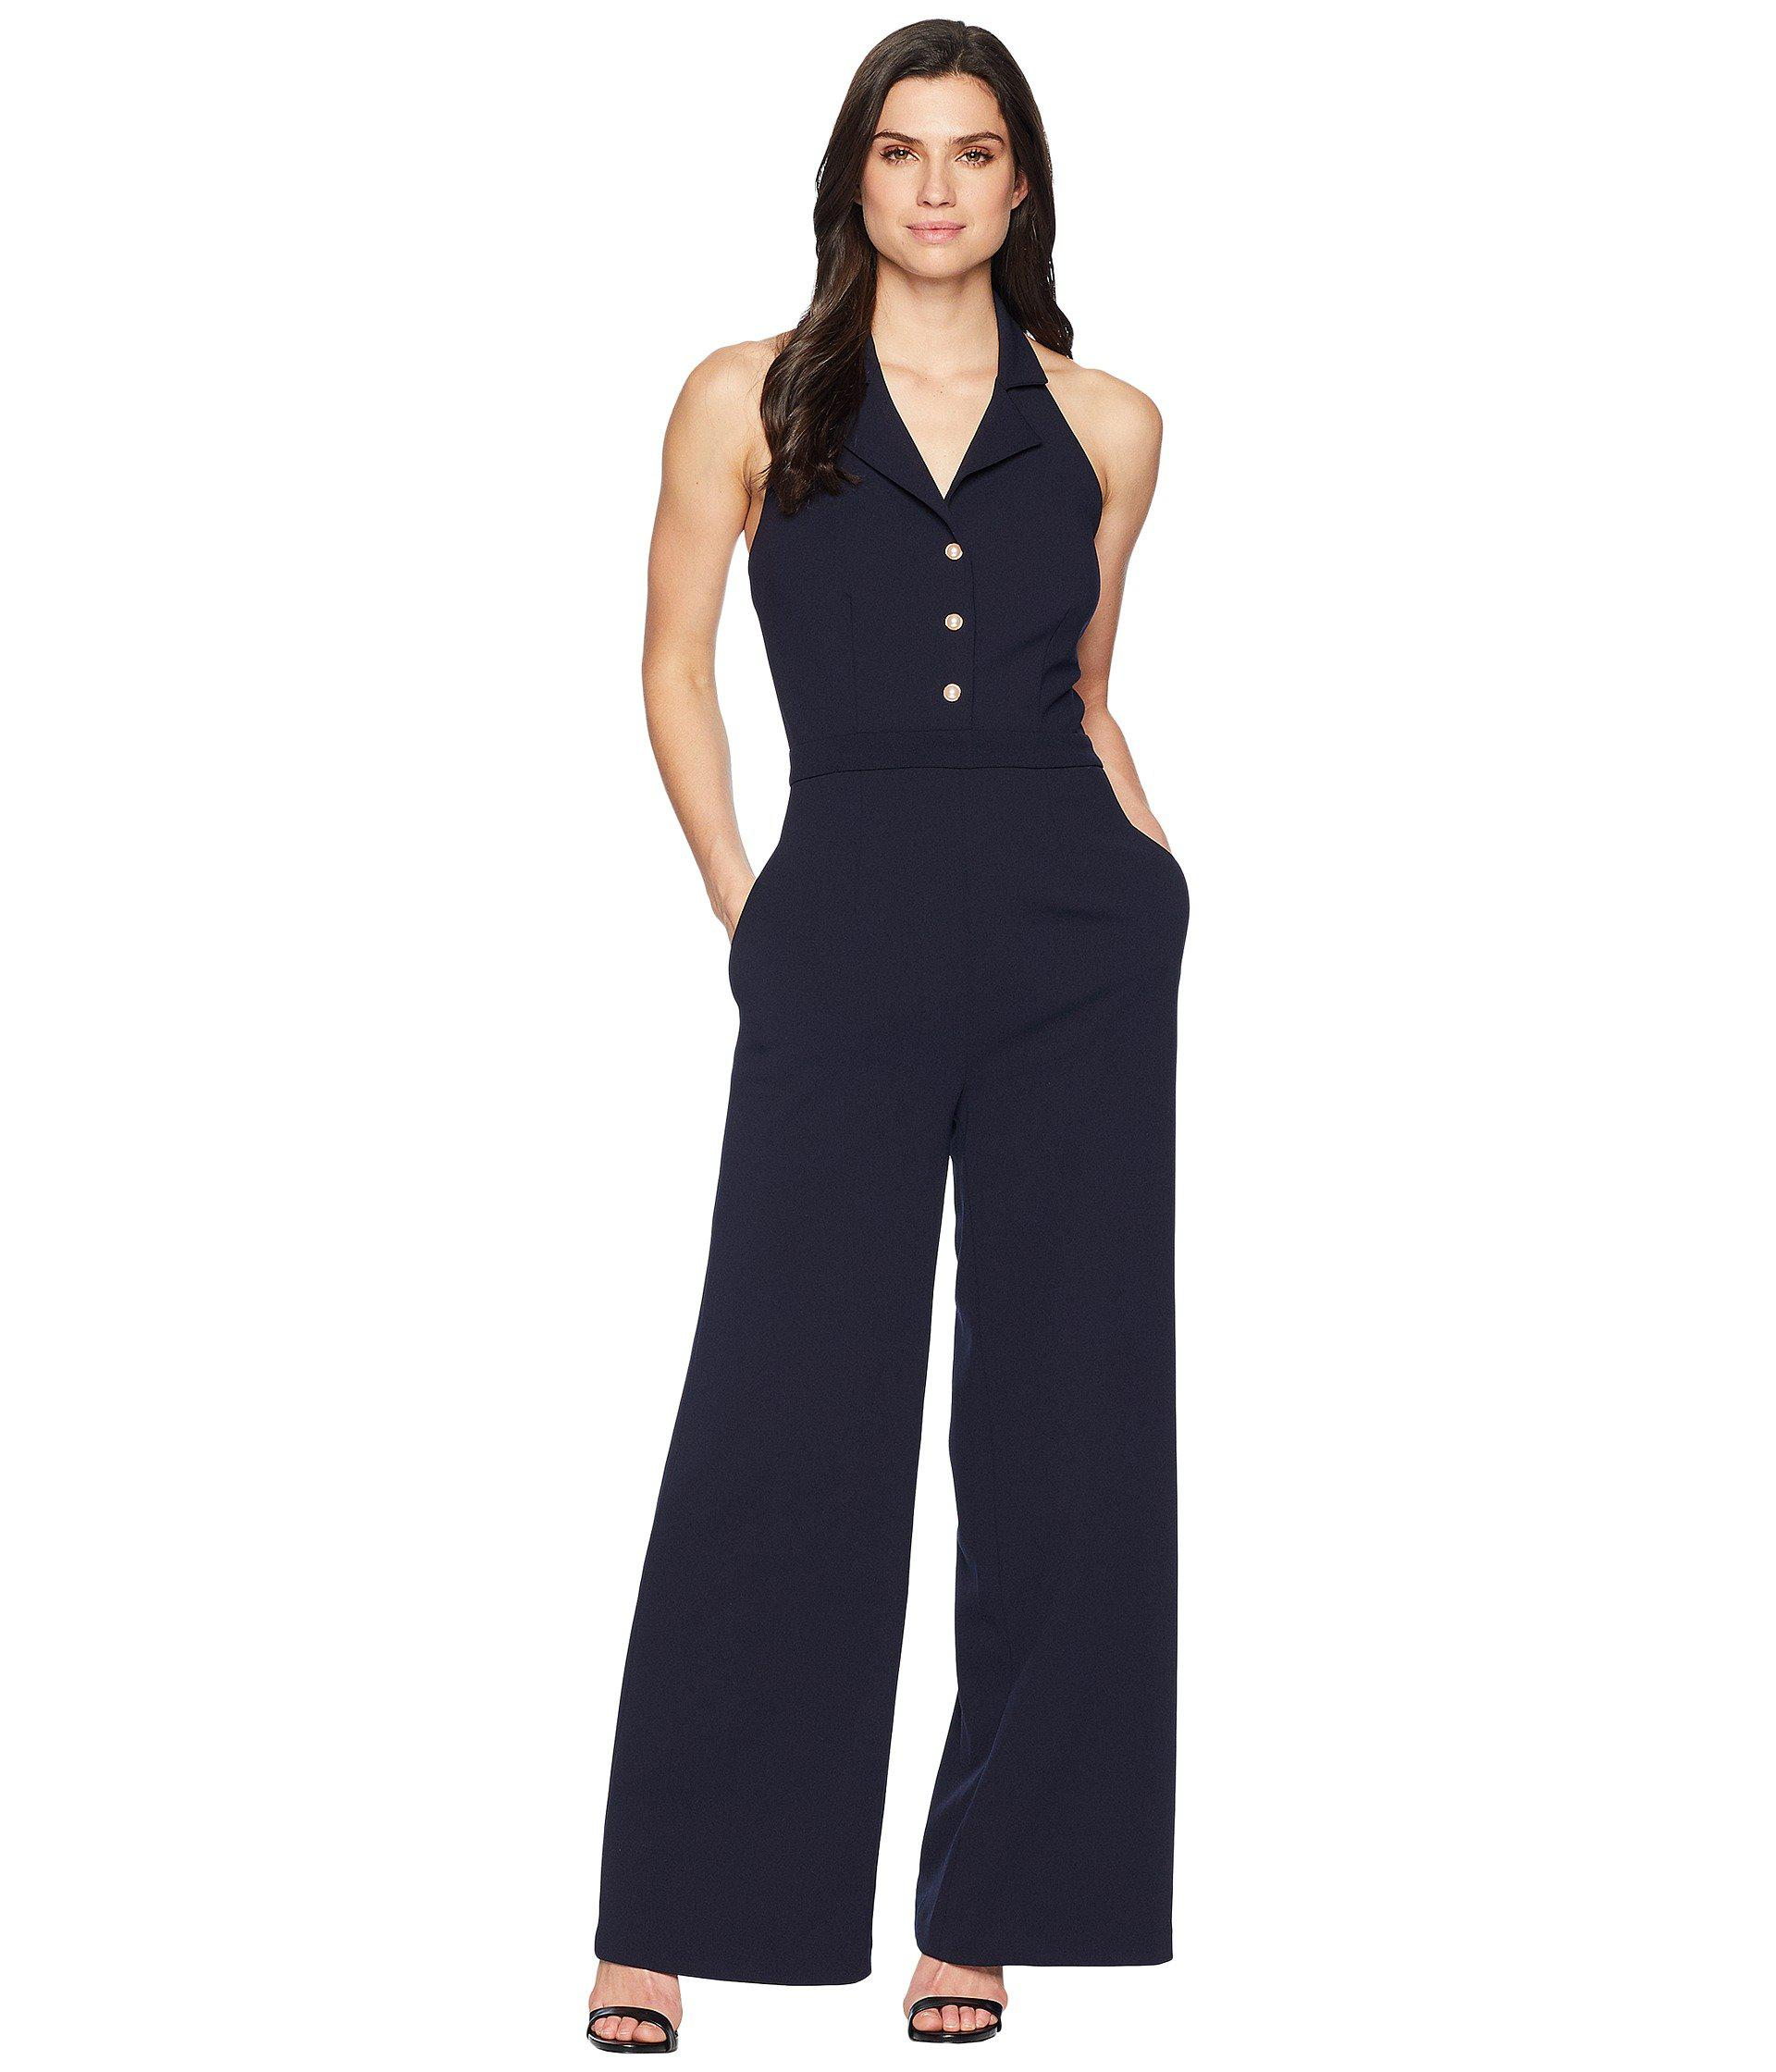 54270ed1b ... Clothing for Women - Macy s; b5c0b7054a2 Lyst - Ivanka Trump Halter  Neck Maxi Jumpsuit in Blue - Save 43% ...